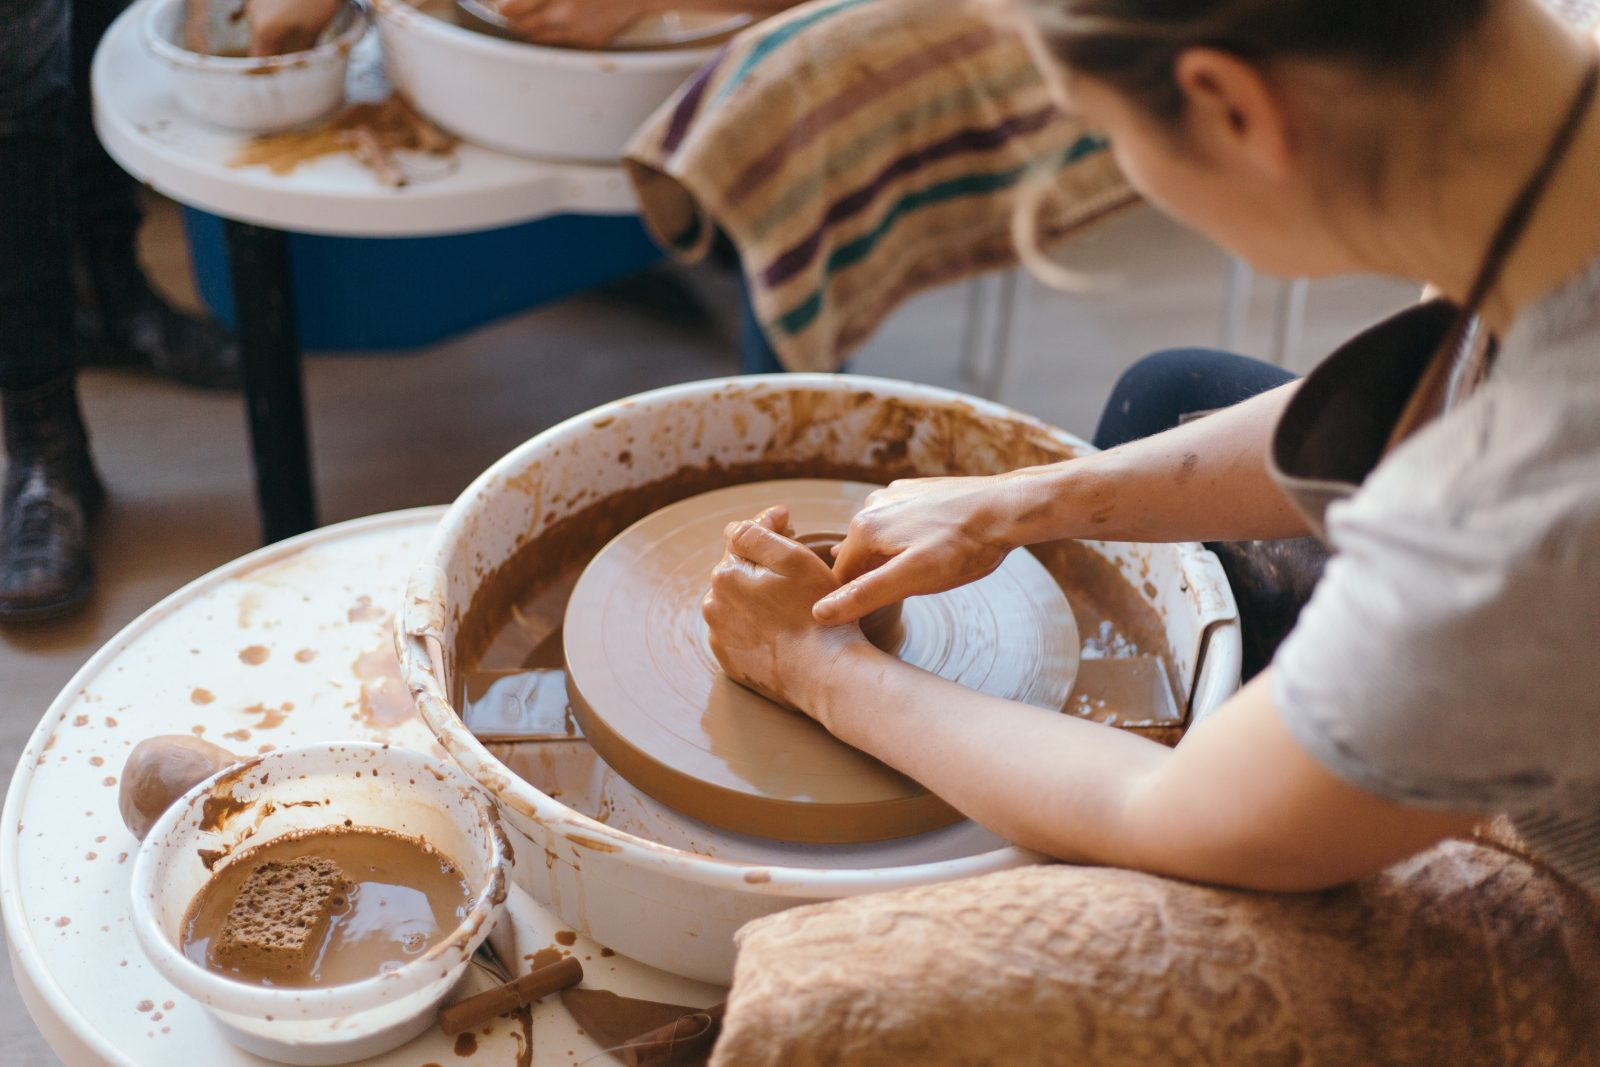 Woman engaging in forming pottery